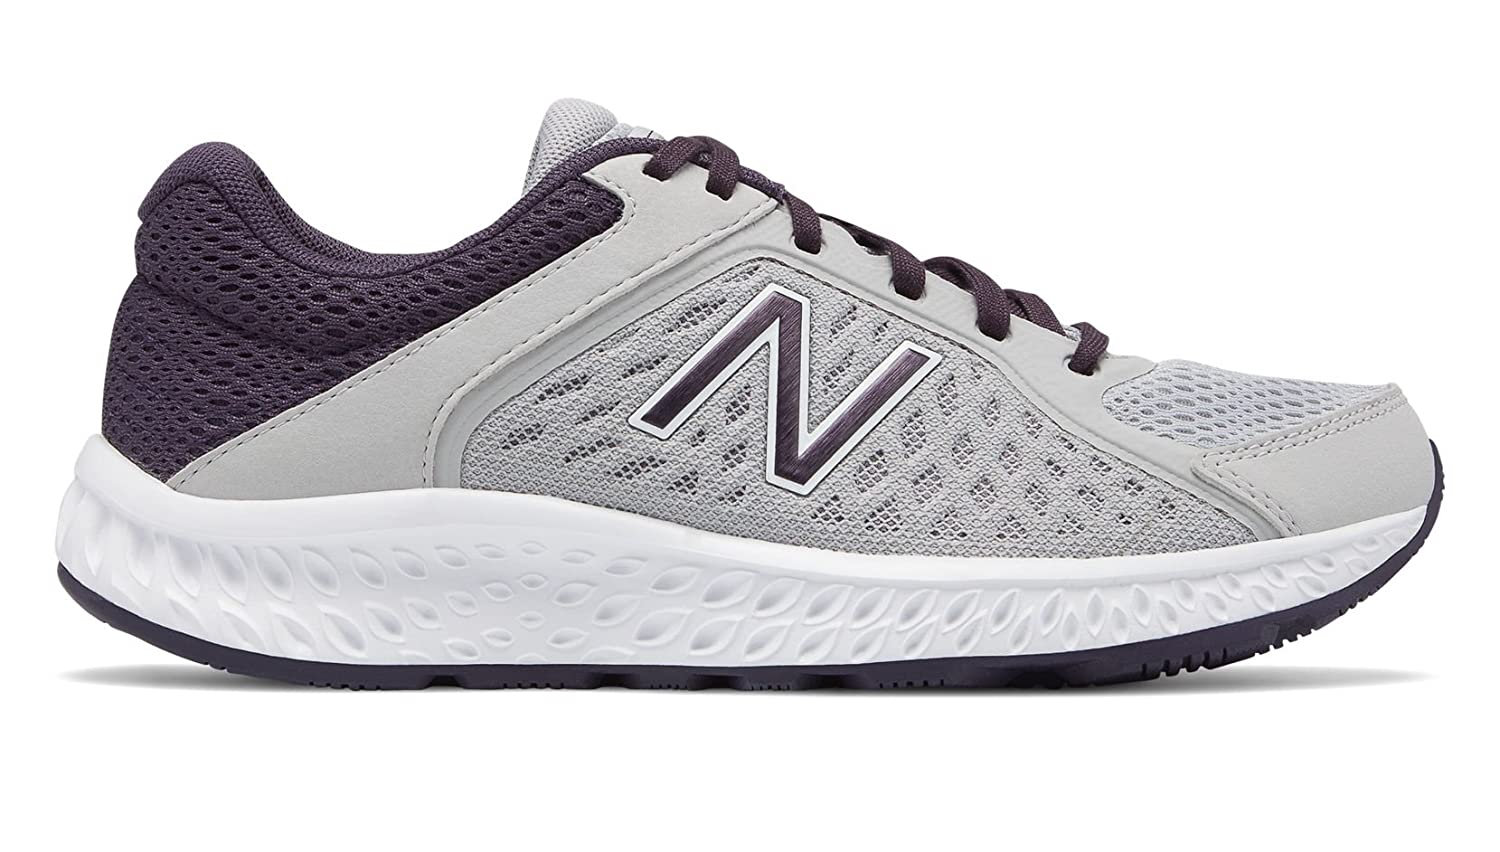 New Balance Women's 420v4 Cushioning Running Shoe B0791TW173 8 D US|Rain Cloud/Elderberry/White